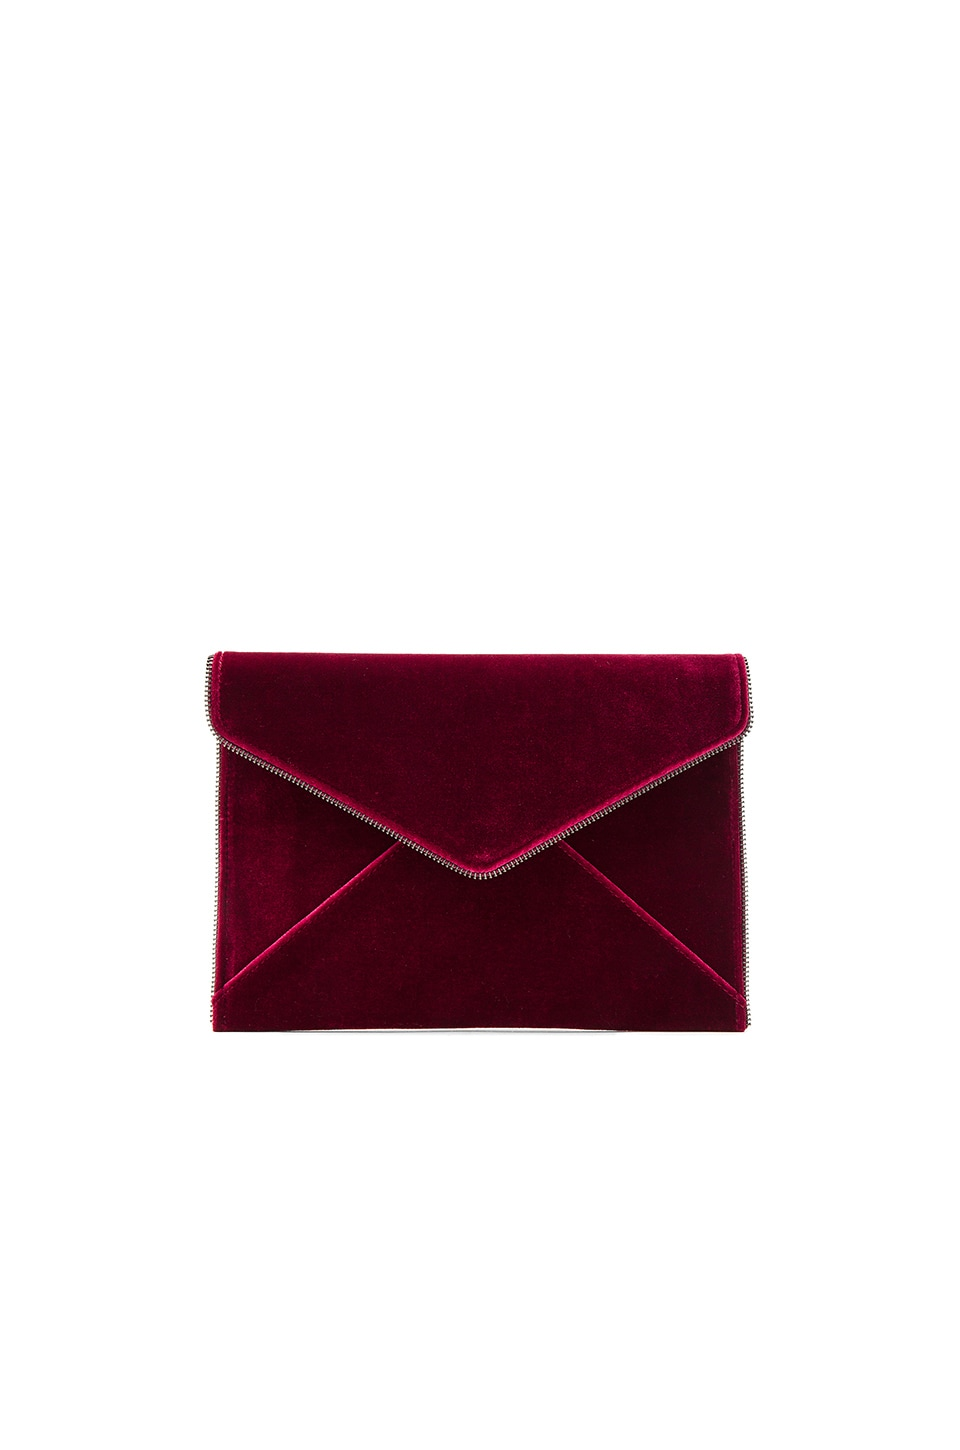 Rebecca Minkoff Leo Clutch in Soft Berry